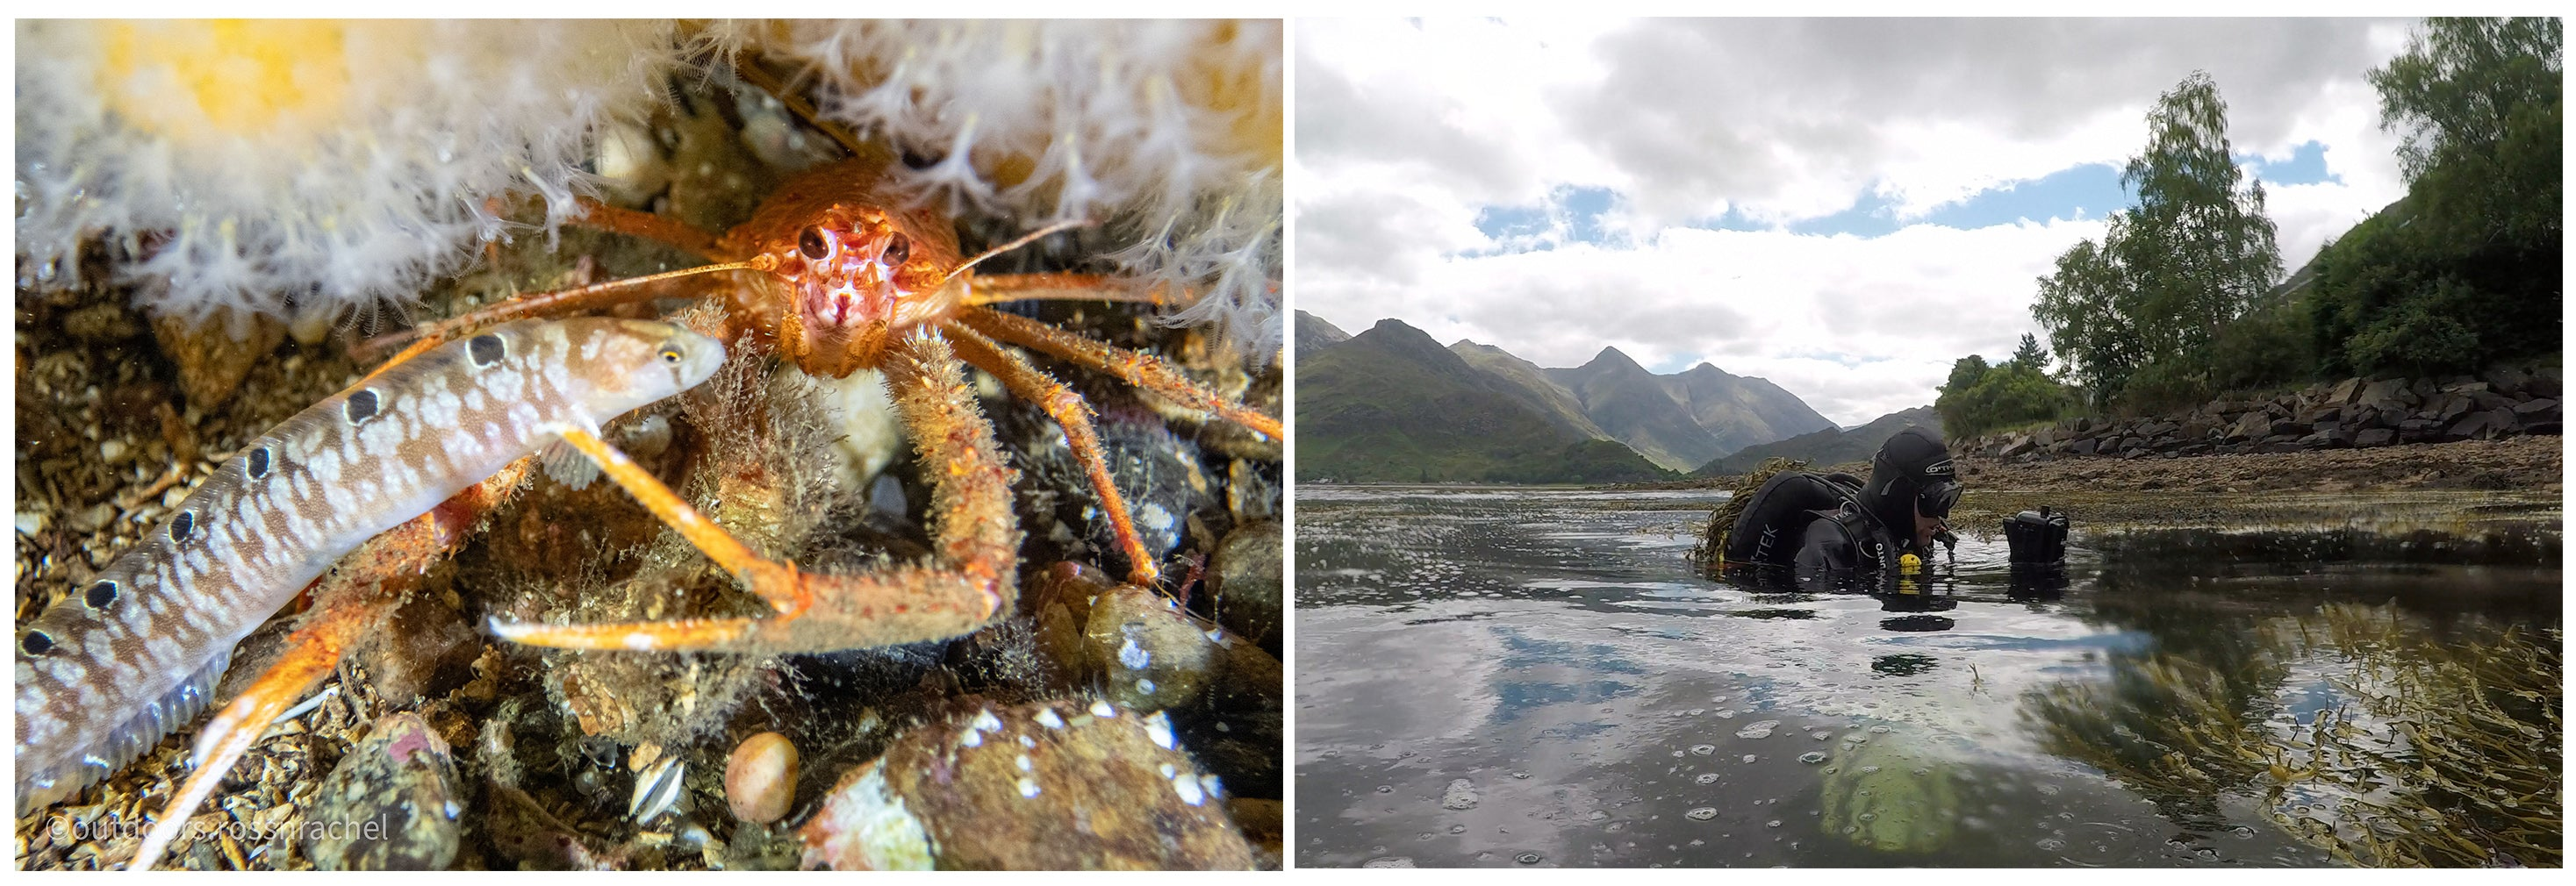 Left image of brittlestars and right image shows diver in Loch Duich